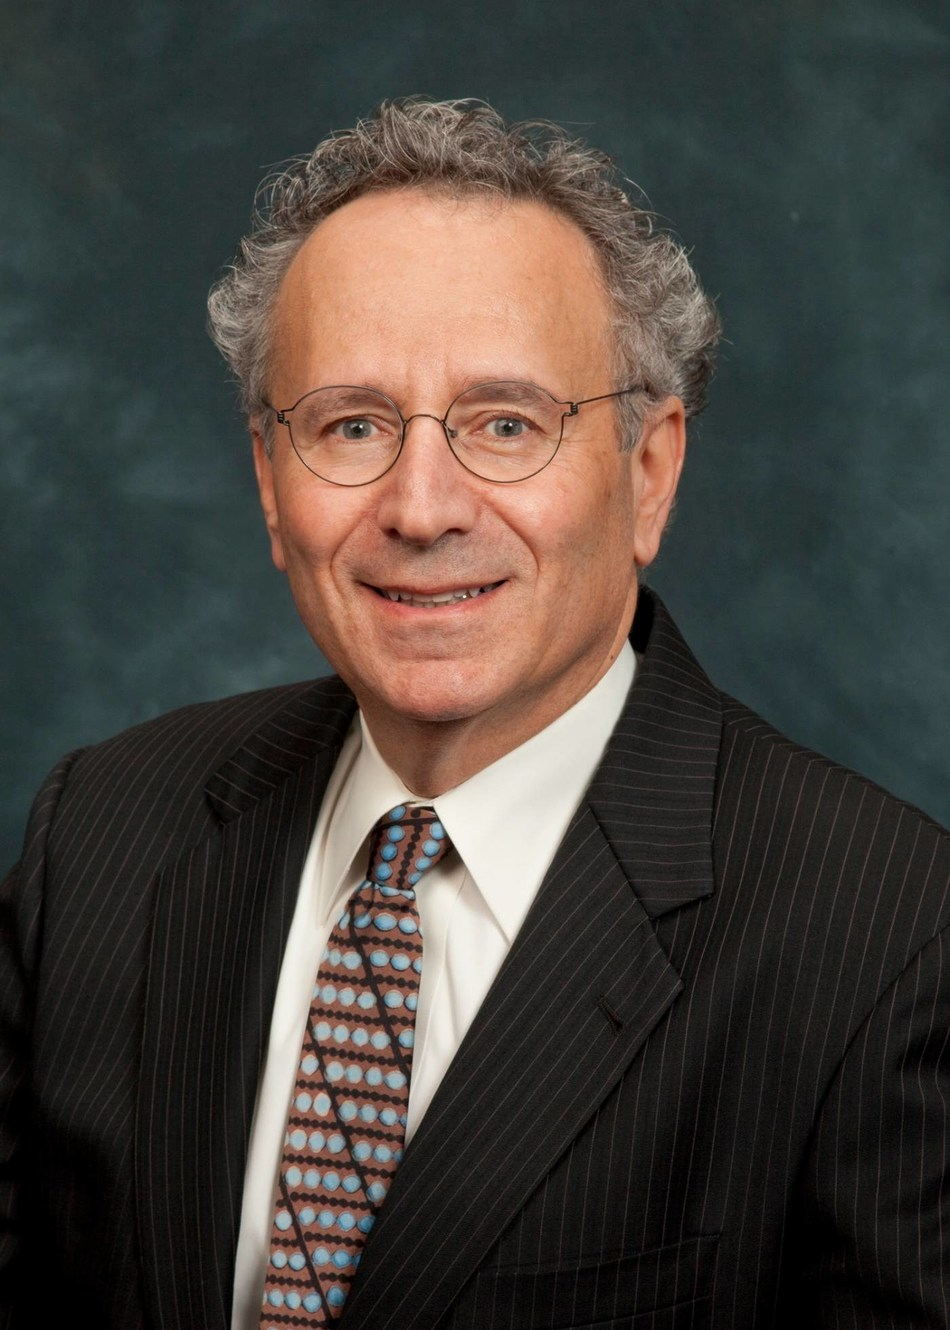 Jeff Lasker - Chief Physician Officer